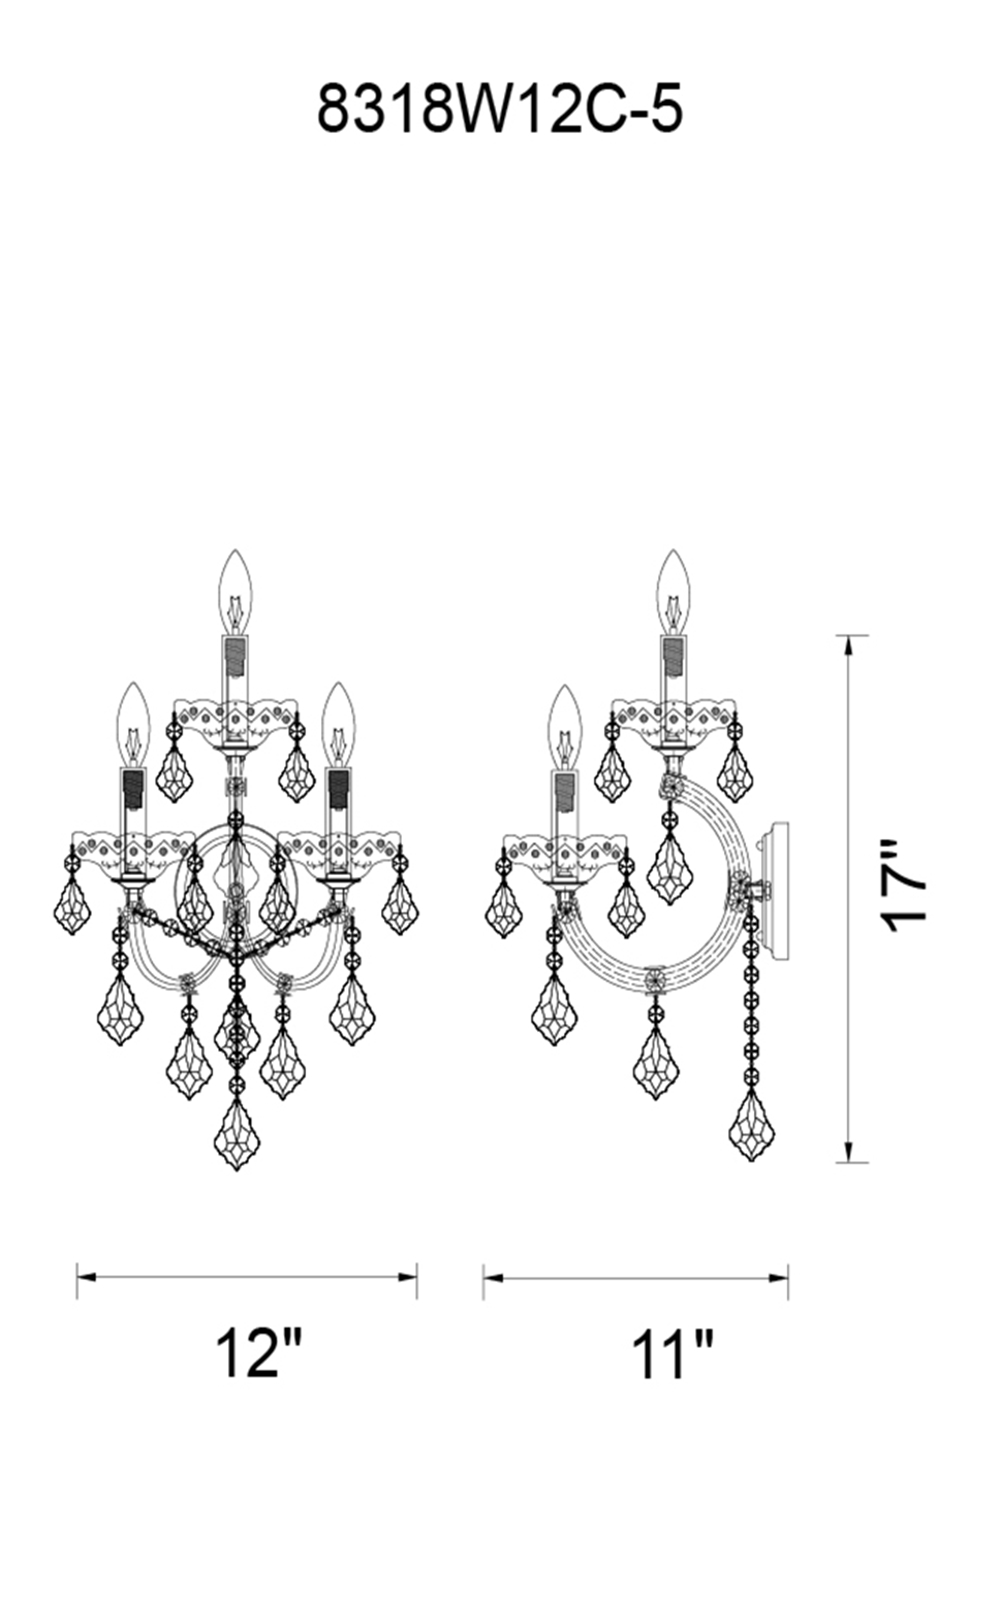 CWI Lighting Maria Theresa 5 Light Wall Sconce With Chrome Finish Model: 8318W12C-5 (CLEAR) Line Drawing